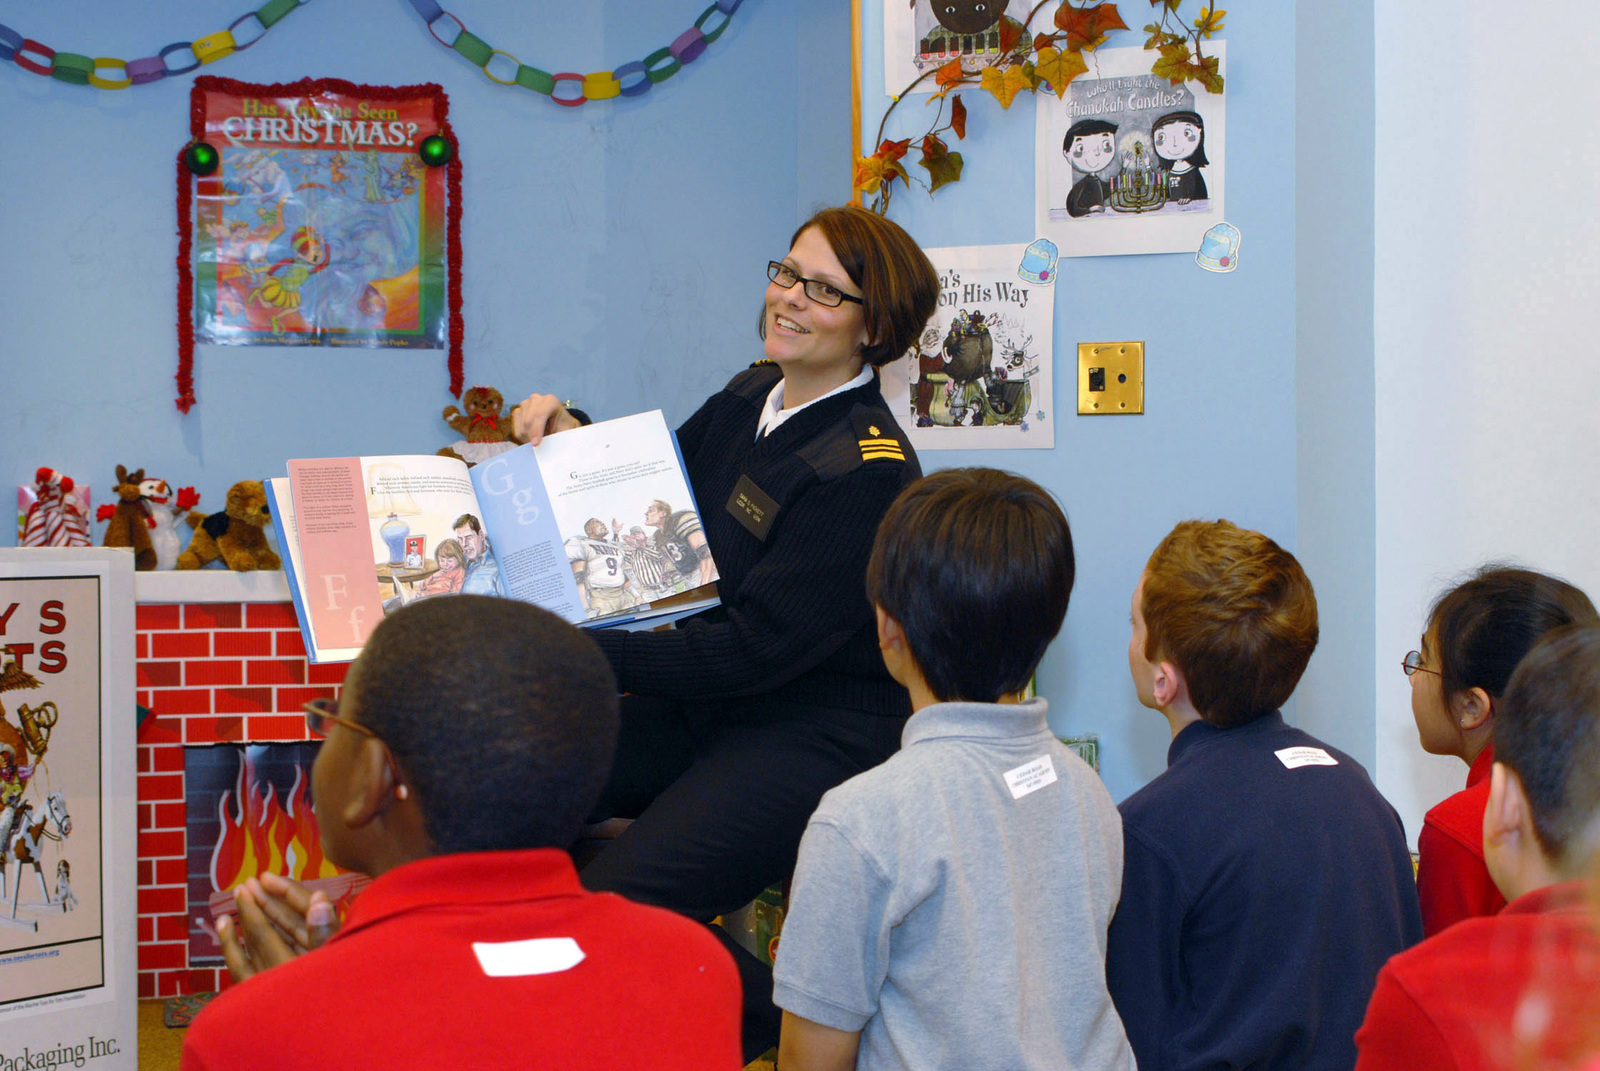 U.S. Navy LT. CMDR. Sara Pickett, a clinical nurse specialist at Naval Medical Center Portsmouth, reads stories to kids at a local bookstore, in Virginia Beach, Va. (U.S. Navy PHOTO by Mass Communication SPECIALIST Seamen Cory Rose) (Released)